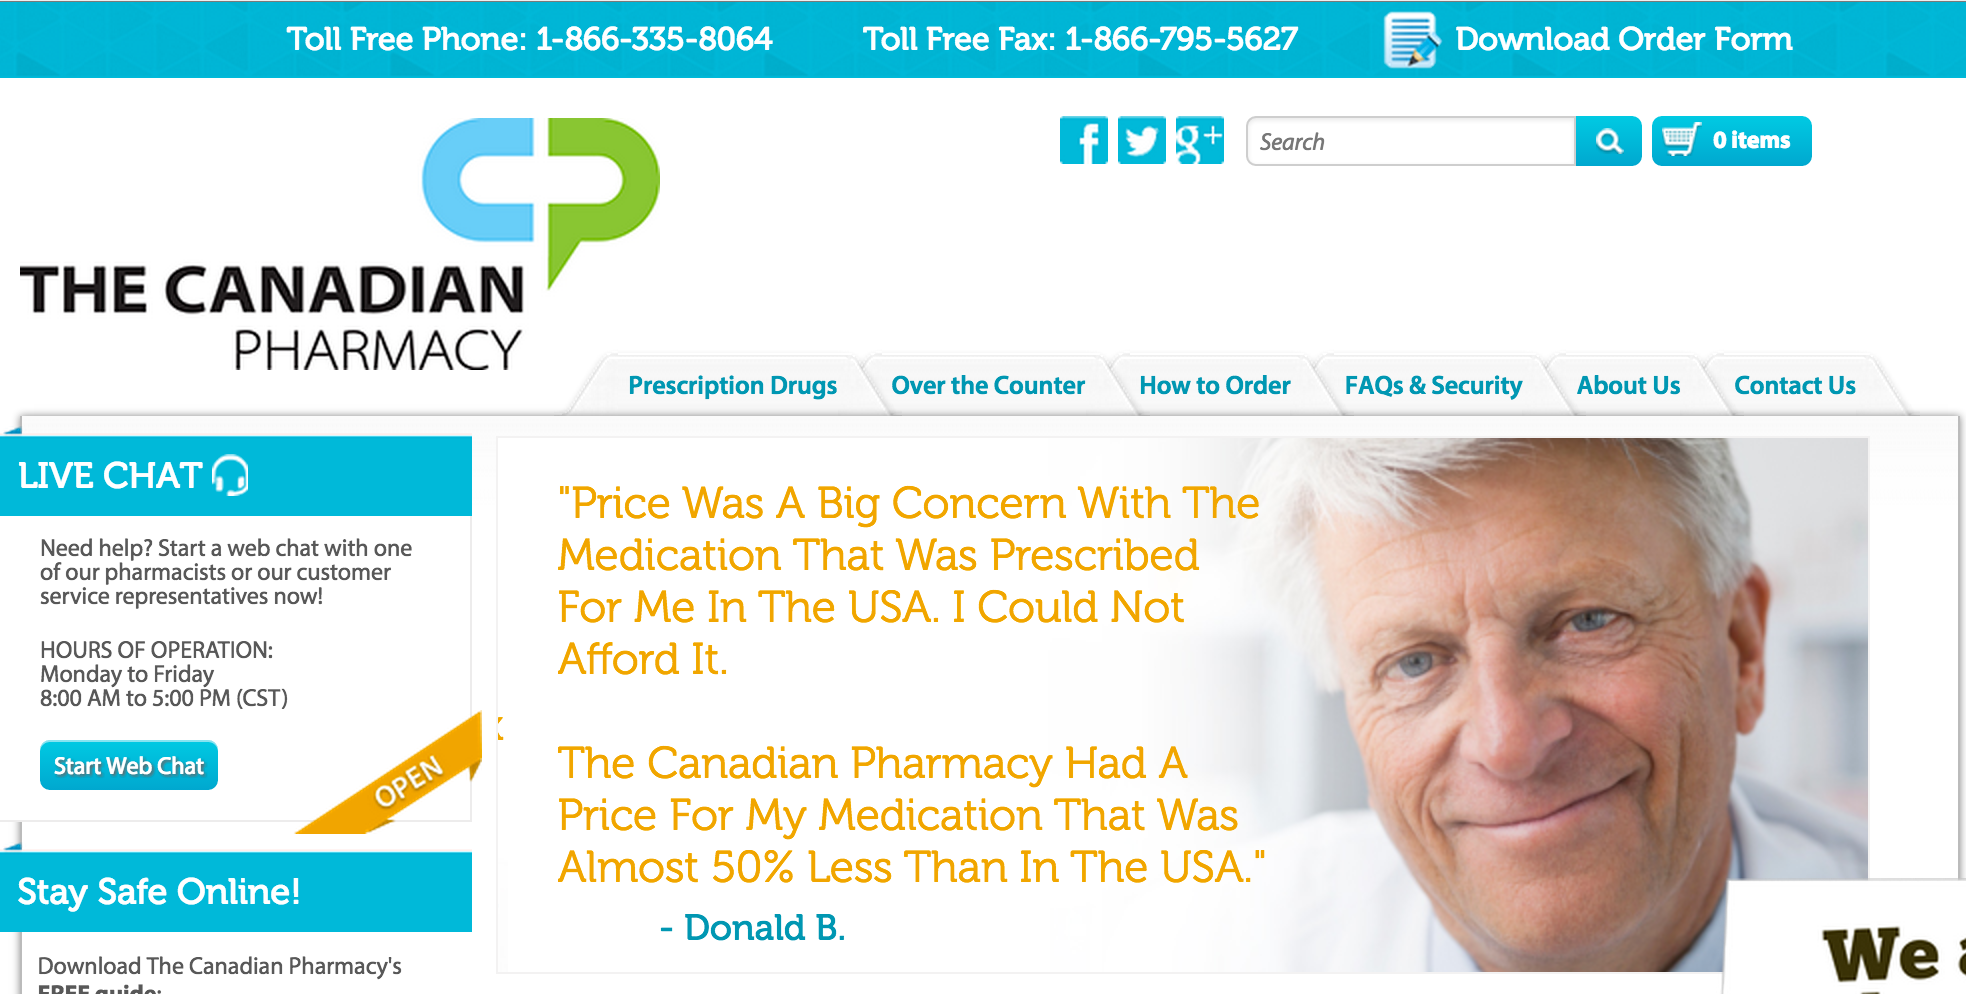 The Canadian Pharmacy - Pharmacy Affiliate Program